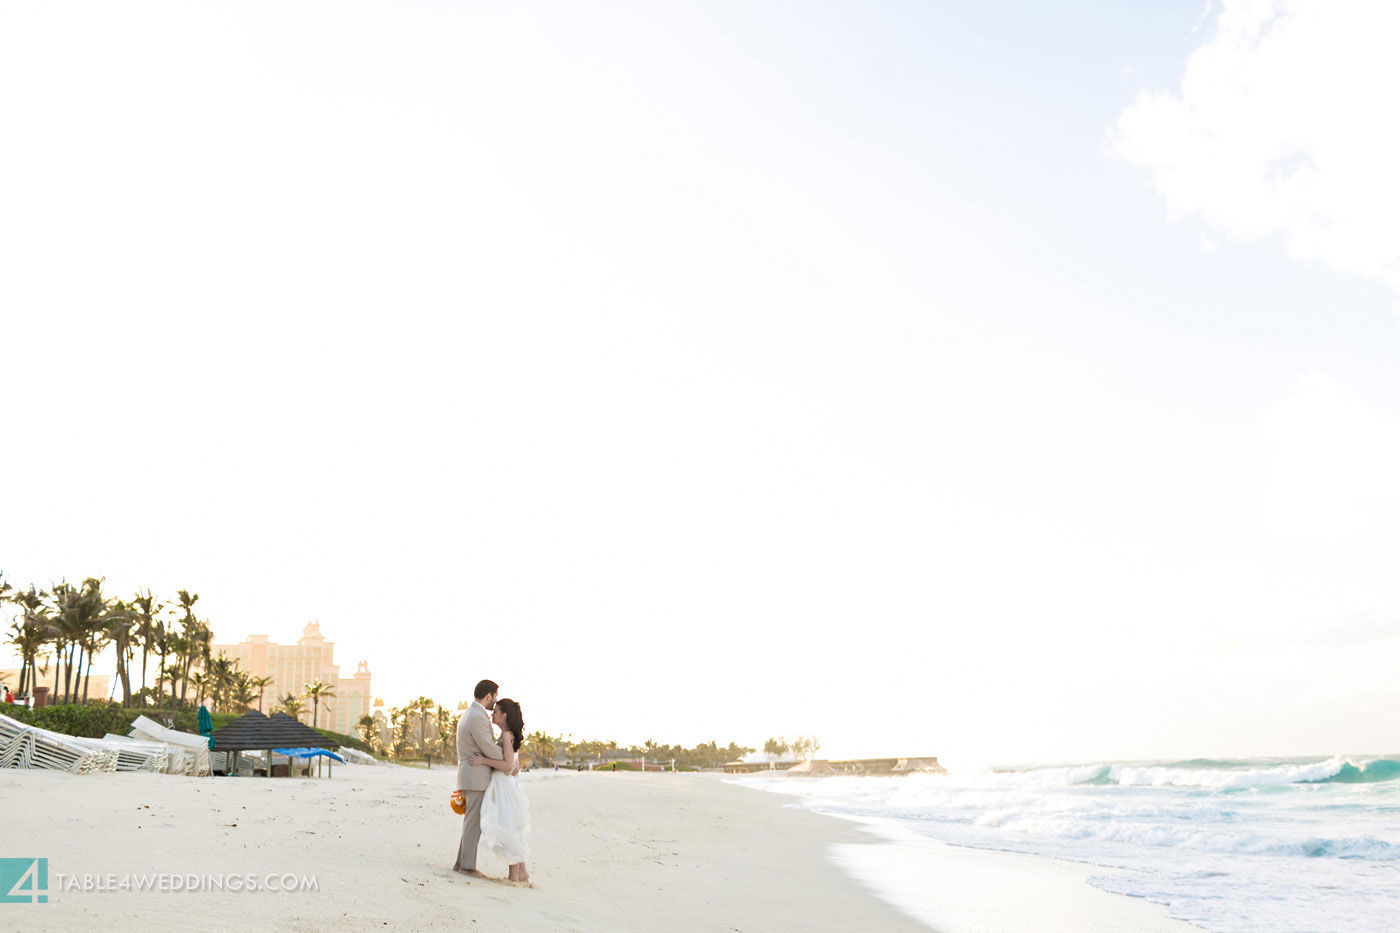 atlantis bahamas beach wedding during hurricane sandy